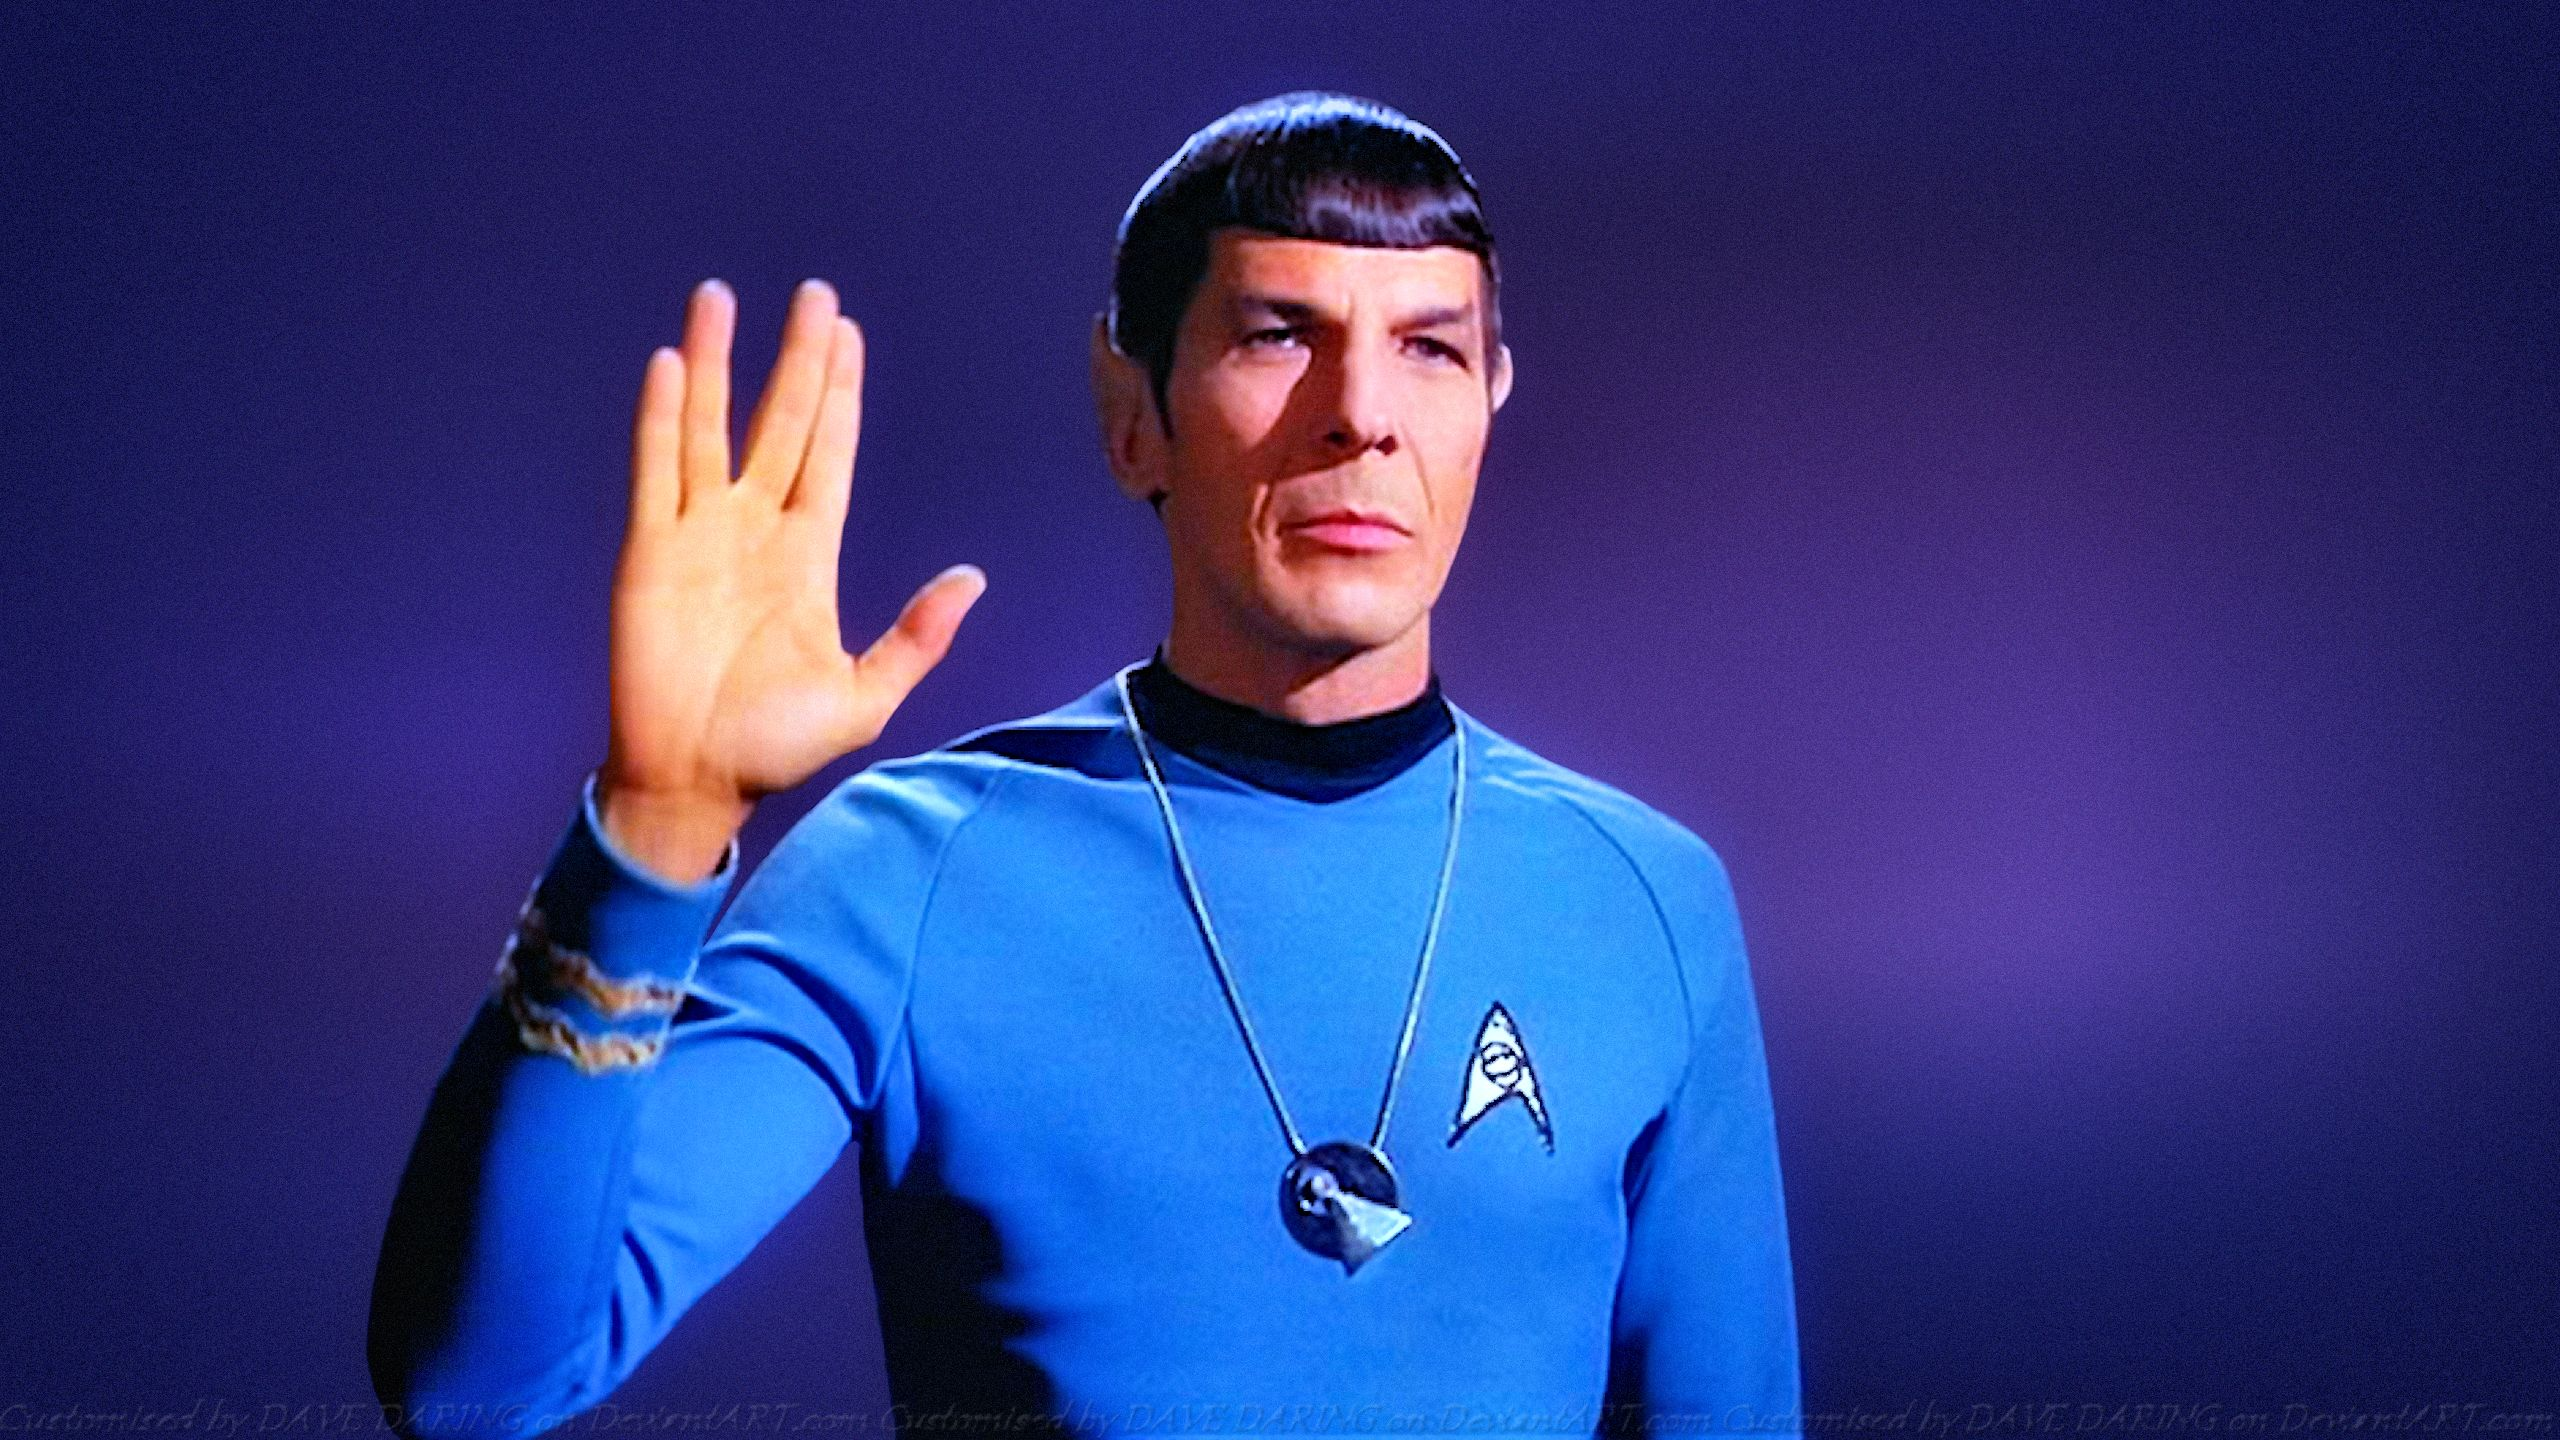 Cult Stories Leonard Nimoy mr. Spock star trek enterprise tv sci-fi series cult stories cultstories cinema cult story cultstory art culture music ipse dixit aneddoti citazioni frasi famose aforismi immagini foto personaggi cultura musica storie facts fatti celebrità vip cult cultstories fantascienza televisione leonard nimoy morto leonard nimoy funeral leonard nimoy biografia leonard nimoy frasi leonard nimoy big bang theory leonard nimoy vita privata leonard nimoy sheldon cooper leonard nimoy imdb leonard nimoy ballad of bilbo baggins leonard nimoy simpsons leonard nimoy altezza leonard nimoy twitter leonard nimoy autograph leonard nimoy address leonard nimoy as spock leonard nimoy autograph request leonard nimoy and susan bay leonard nimoy and big bang theory leonard nimoy advert leonard nimoy and jim parsons leonard nimoy audi what's a leonard nimoy a touch of leonard nimoy leonard nimoy a jew audi ad leonard nimoy leonard nimoy a christian a brave new world leonard nimoy leonard nimoy a messianic jew how to get a leonard nimoy autograph leonard nimoy a lifetime of love leonard nimoy a human being who built that leonard nimoy a woman called golda a leonard nimoy film entrevista a leonard nimoy leonard nimoy big bang leonard nimoy big bang theory episode leonard nimoy birthday leonard nimoy bruno mars leonard nimoy bilbo baggins lyrics leonard nimoy bilbo song leonard nimoy biography wikipedia leonard nimoy cause of death leonard nimoy columbo leonard nimoy commercial leonard nimoy canadian leonard nimoy civ 4 leonard nimoy canadian money leonard nimoy civ 5 leonard nimoy civilization 5 leonard nimoy carol burnett leonard nimoy canadian dollar leonard nimoy death leonard nimoy dead leonard nimoy died leonard nimoy documentary leonard nimoy director leonard nimoy death cause leonard nimoy death date leonard nimoy daughter leonard nimoy date of birth leonard nimoy desiderata biografia di leonard nimoy leonard nimoy estate leonard nimoy event horizon theater leonard nimoy emoji leonard nimoy elite dangerous leonard nimoy eye color leonard nimoy eyebrows leonard nimoy eyes leonard nimoy ears leonard nimoy education leonard nimoy exhibit graham nc chi è leonard nimoy zachary quinto e leonard nimoy quem e leonard nimoy jim parsons e leonard nimoy leonard nimoy quem é quem é leonard nimoy leonard nimoy film e programmi televisivi leonard nimoy facebook leonard nimoy filmography leonard nimoy fan mail leonard nimoy facebook official leonard nimoy fotografo leonard nimoy fringe season 4 leonard nimoy full body leonard nimoy garden leonard nimoy gun control leonard nimoy garden quote leonard nimoy grandchildren leonard nimoy get smart leonard nimoy guitar leonard nimoy glove leonard nimoy gravesite leonard nimoy griffith observatory leonard nimoy good morning starshine leonard nimoy height leonard nimoy hobbit leonard nimoy highly illogical leonard nimoy how did he die leonard nimoy house leonard nimoy hammer leonard nimoy home leonard nimoy host leonard nimoy highly illogical song leonard nimoy heroes leonard nimoy in big bang theory leonard nimoy in fringe leonard nimoy images leonard nimoy is he dead leonard nimoy in super 8 leonard nimoy in wheelchair leonard nimoy illogical leonard nimoy in star wars leonard nimoy in equus i love leonard nimoy you i leonard nimoy leonard nimoy jewish leonard nimoy jfk leonard nimoy jimi hendrix leonard nimoy jim parsons leonard nimoy juif leonard nimoy judaism leonard nimoy jon stewart leonard nimoy john lennon leonard nimoy jumble leonard nimoy john de lancie j.j. abrams leonard nimoy leonard nimoy kingdom hearts leonard nimoy kickstarter leonard nimoy kingdom hearts interview leonard nimoy karl urban leonard nimoy krank leonard nimoy kimdir leonard nimoy kid monk baroni leonard nimoy kim cattrall leonard nimoy kingdom hearts 3d leonard nimoy kiss leonard nimoy last words leonard nimoy last movie leonard nimoy laserdisc leonard nimoy last photo leonard nimoy last twitter leonard nimoy last quote leonard nimoy life is like a garden leonard nimoy llap leonard nimoy last tweets leonard nimoy last twitter post leonard nimoy leonard nimoy music leonard nimoy married leonard nimoy master xehanort leonard nimoy music from outer space leonard nimoy marriage leonard nimoy marco polo leonard nimoy memory alpha leonard nimoy music video leonard nimoy mort leonard nimoy net worth leonard nimoy nationality leonard nimoy news leonard nimoy napkin leonard nimoy narrator leonard nimoy natal chart leonard nimoy never forget leonard nimoy nasa leonard nimoy nickelodeon leonard nimoy nova leonard nimoy on the big bang theory leonard nimoy obituary leonard nimoy on fringe leonard nimoy on big bang leonard nimoy optimus prime leonard nimoy outer limits leonard nimoy obama leonard nimoy omni theater leonard nimoy on bonanza leonard nimoy oscar o ator leonard nimoy leonard nimoy of star trek dna of leonard nimoy touch of leonard nimoy images of leonard nimoy height of leonard nimoy house of leonard nimoy son of leonard nimoy music of leonard nimoy address of leonard nimoy filmography of leonard nimoy pronunciation of leonard nimoy leonard nimoy poetry leonard nimoy proud mary leonard nimoy pure energy leonard nimoy politics leonard nimoy pictures leonard nimoy presents mr. spock's music from outer space leonard nimoy patrick stewart leonard nimoy put a little love in your heart leonard nimoy parents leonard nimoy pig iron leonard nimoy quotes leonard nimoy quotes garden leonard nimoy quotes about life leonard nimoy quote twitter leonard nimoy quotes star trek leonard nimoy quinto commercial leonard nimoy quotes love leonard nimoy queen for a day leonard nimoy quotes simpsons leonard nimoy quit smoking leonard nimoy reads desiderata leonard nimoy ruby leonard nimoy record leonard nimoy real name leonard nimoy rip leonard nimoy ruby don't take your love to town leonard nimoy roast leonard nimoy reddit leonard nimoy reading leonard nimoy reads ray bradbury leonard nimoy star trek leonard nimoy sheldon leonard nimoy son leonard nimoy song leonard nimoy sentinel prime leonard nimoy sherlock holmes leonard nimoy star wars leonard s nimoy leonard nimoy the big bang theory leonard nimoy the ballad of bilbo baggins leonard nimoy tumblr leonard nimoy the way i feel leonard nimoy the simpsons leonard nimoy the challenge leonard nimoy the big bang leonard nimoy the balcony leonard nimoy the shekhina project leonard nimoy t shirt leonard nimoy unicron leonard nimoy us army leonard nimoy unsolved mysteries leonard nimoy unexplained mysteries leonard nimoy untouchables leonard nimoy update leonard nimoy ufo leonard nimoy ukrainian leonard nimoy upcoming appearances leonard nimoy uhura leonard nimoy voice leonard nimoy video leonard nimoy and zachary quinto leonard nimoy voice acting leonard nimoy vegetarian leonard nimoy vulcan alberta leonard nimoy voice over leonard nimoy vincent van gogh leonard nimoy video game voice leonard nimoy voice of sentinel prime civ v leonard nimoy civ v leonard nimoy mod zachary quinto vs leonard nimoy leonard nimoy wiki leonard nimoy wheelchair leonard nimoy western leonard nimoy where is love leonard nimoy william shatner friendship leonard nimoy william shatner tumblr leonard nimoy william shatner interview leonard nimoy whales alive leonard nimoy walk the line leonard nimoy william shatner friends leonard nimoy x files simpsons leonard nimoy x files leonard nimoy master xehanort interview leonard nimoy star trek xi leonard nimoy star trek xii leonard nimoy young leonard nimoy youtube leonard nimoy yiddish leonard nimoy youtube song leonard nimoy you and i leonard nimoy young photos leonard nimoy you are not alone leonard nimoy youtube bilbo baggins leonard nimoy youtube commercial leonard nimoy youtube bilbo leonard nimoy and william shatner sheldon cooper y leonard nimoy zachary quinto y leonard nimoy leonard nimoy and sheldon leonard nimoy y the big bang theory william shatner y leonard nimoy amigos leonard nimoy zachary quinto leonard nimoy zachary quinto audi leonard nimoy zachary quinto commercial leonard nimoy zachary quinto interview leonard nimoy zambezia leonard nimoy zachary quinto the challenge leonard nimoy zachary quinto car leonard nimoy zimbio leonard nimoy zachary quinto audi ad leonard nimoy zombies of the stratosphere leonard nimoy 1966 leonard nimoy 1970s leonard nimoy 1990 leonard nimoy 1973 leonard nimoy hobbit 1977 leonard nimoy star trek 12 leonard nimoy them 1954 leonard nimoy's primortals #1 leonard nimoy transformers 1986 leonard nimoy born 1931 fringe season 1 leonard nimoy leonard nimoy 2014 leonard nimoy 2013 leonard nimoy 2009 leonard nimoy 2012 leonard nimoy 2013 appearances leonard nimoy 2011 leonard nimoy 2010 leonard nimoy 24 sata leonard nimoy star trek 2013 leonard nimoy age 2013 star trek 2 leonard nimoy 2 sides of leonard nimoy leonard nimoy fringe season 3 leonard nimoy transformers 3 leonard nimoy transformers 3 star trek line leonard nimoy transformers 3 line leonard nimoy star trek 3 leonard nimoy kingdom hearts 3 leonard nimoy fringe saison 3 transformers 3 leonard nimoy needs of the many transformers 3 leonard nimoy quotes kingdom hearts 3 leonard nimoy leonard nimoy civilization 4 leonard nimoy playstation 4 leonard nimoy mission impossible 4 fringe season 4 leonard nimoy civ 4 leonard nimoy playstation 4 leonard nimoy introduces the next generation civilization 4 leonard nimoy playstation 4 leonard nimoy transformers 4 leonard nimoy leonard nimoy 5 dollar bill leonard nimoy 5k leonard nimoy season 5 fringe leonard nimoy fringe saison 5 fringe season 5 leonard nimoy civ 5 leonard nimoy civilization 5 leonard nimoy civ 5 leonard nimoy mod leonard nimoy star wars 7 star wars 7 leonard nimoy leonard nimoy 82 leonard nimoy 82nd birthday leonard nimoy 83 leonard nimoy super 8 leonard nimoy super 8 cameo leonard nimoy prop 8 super 8 leonard nimoy leonard nimoy reno 911